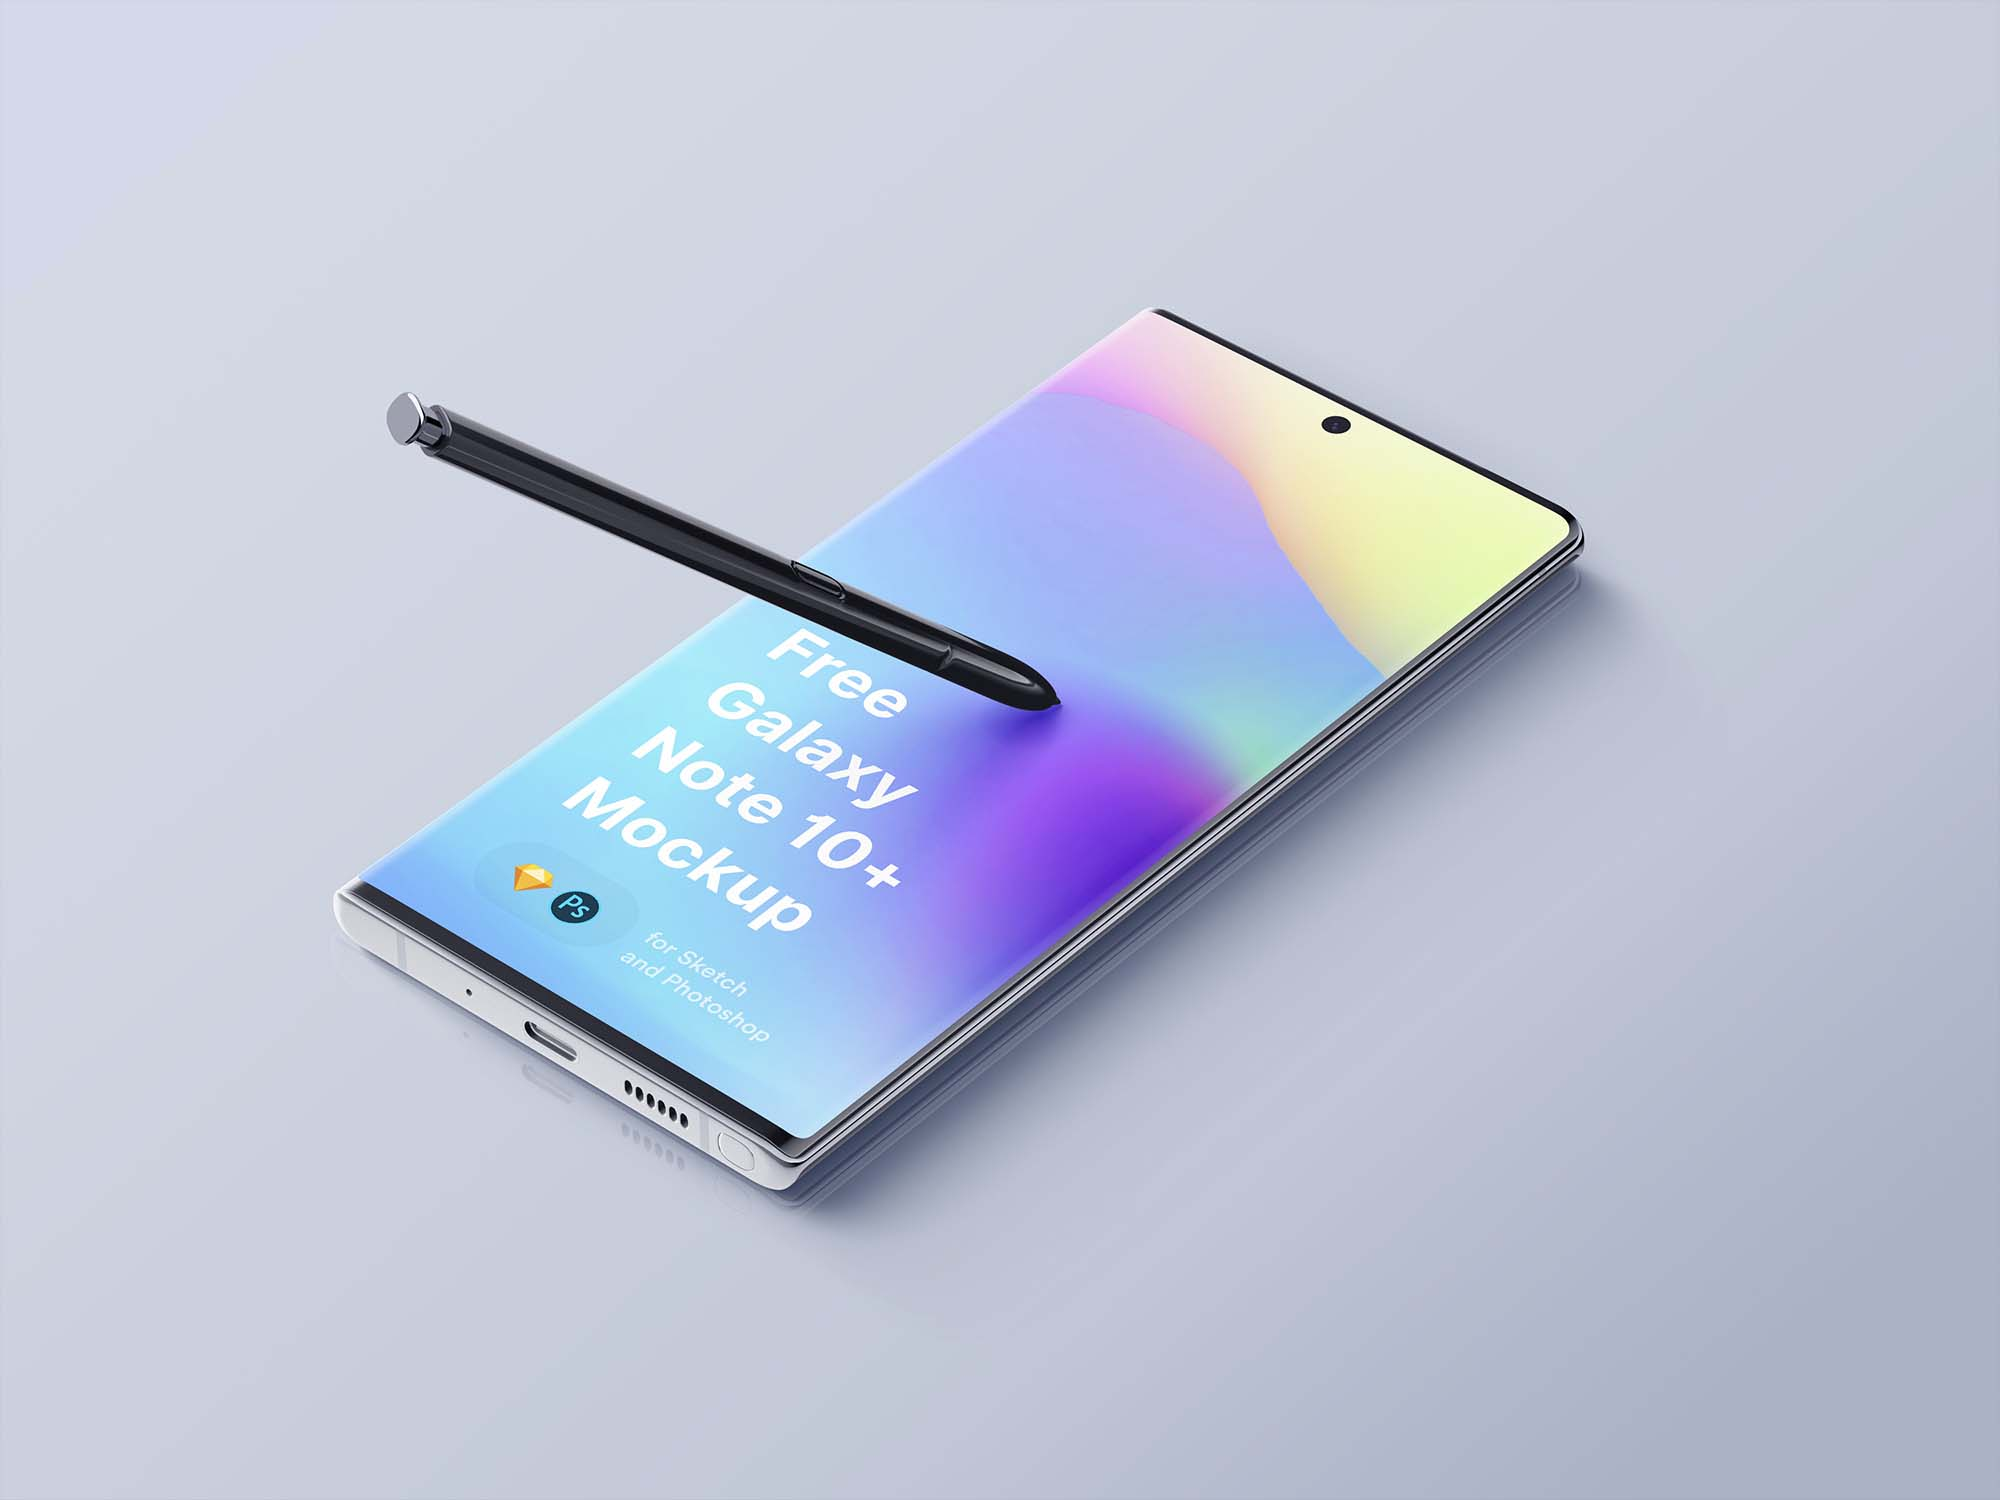 Samsung Galaxy Note 10 Plus Mockup